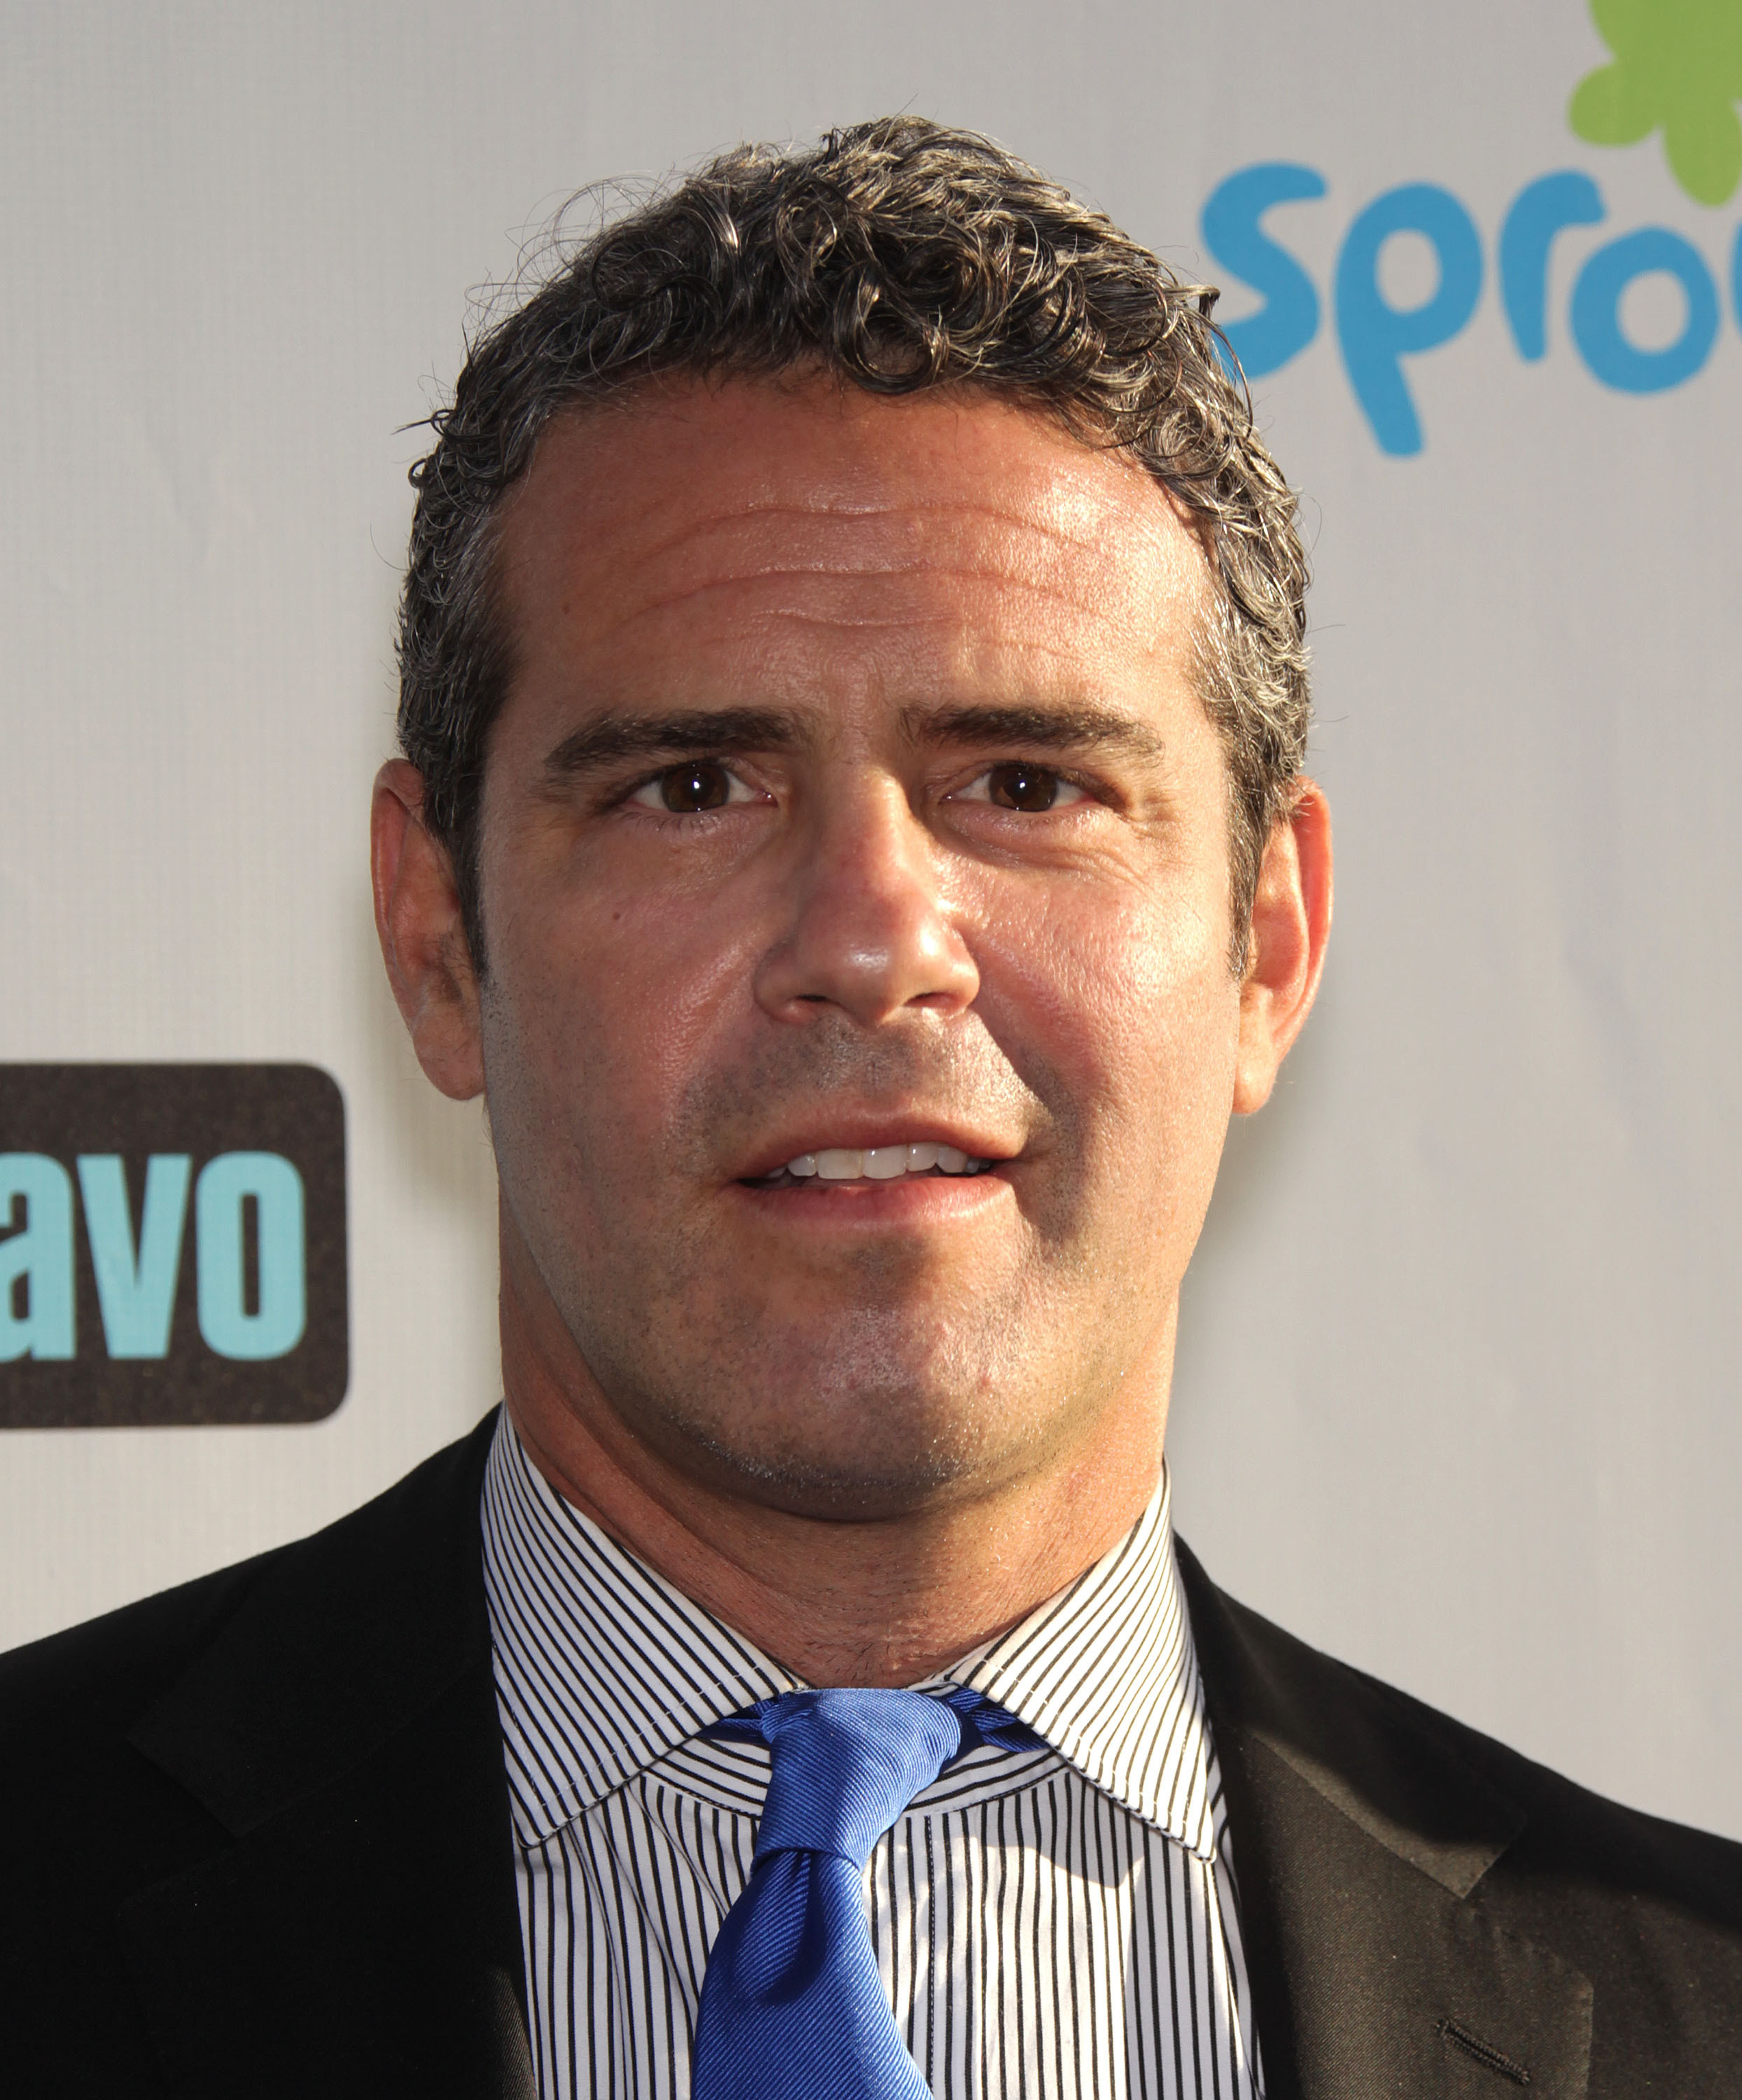 ANDY COHEN arriving to Summer 2011 TCA Party | Shutterstock